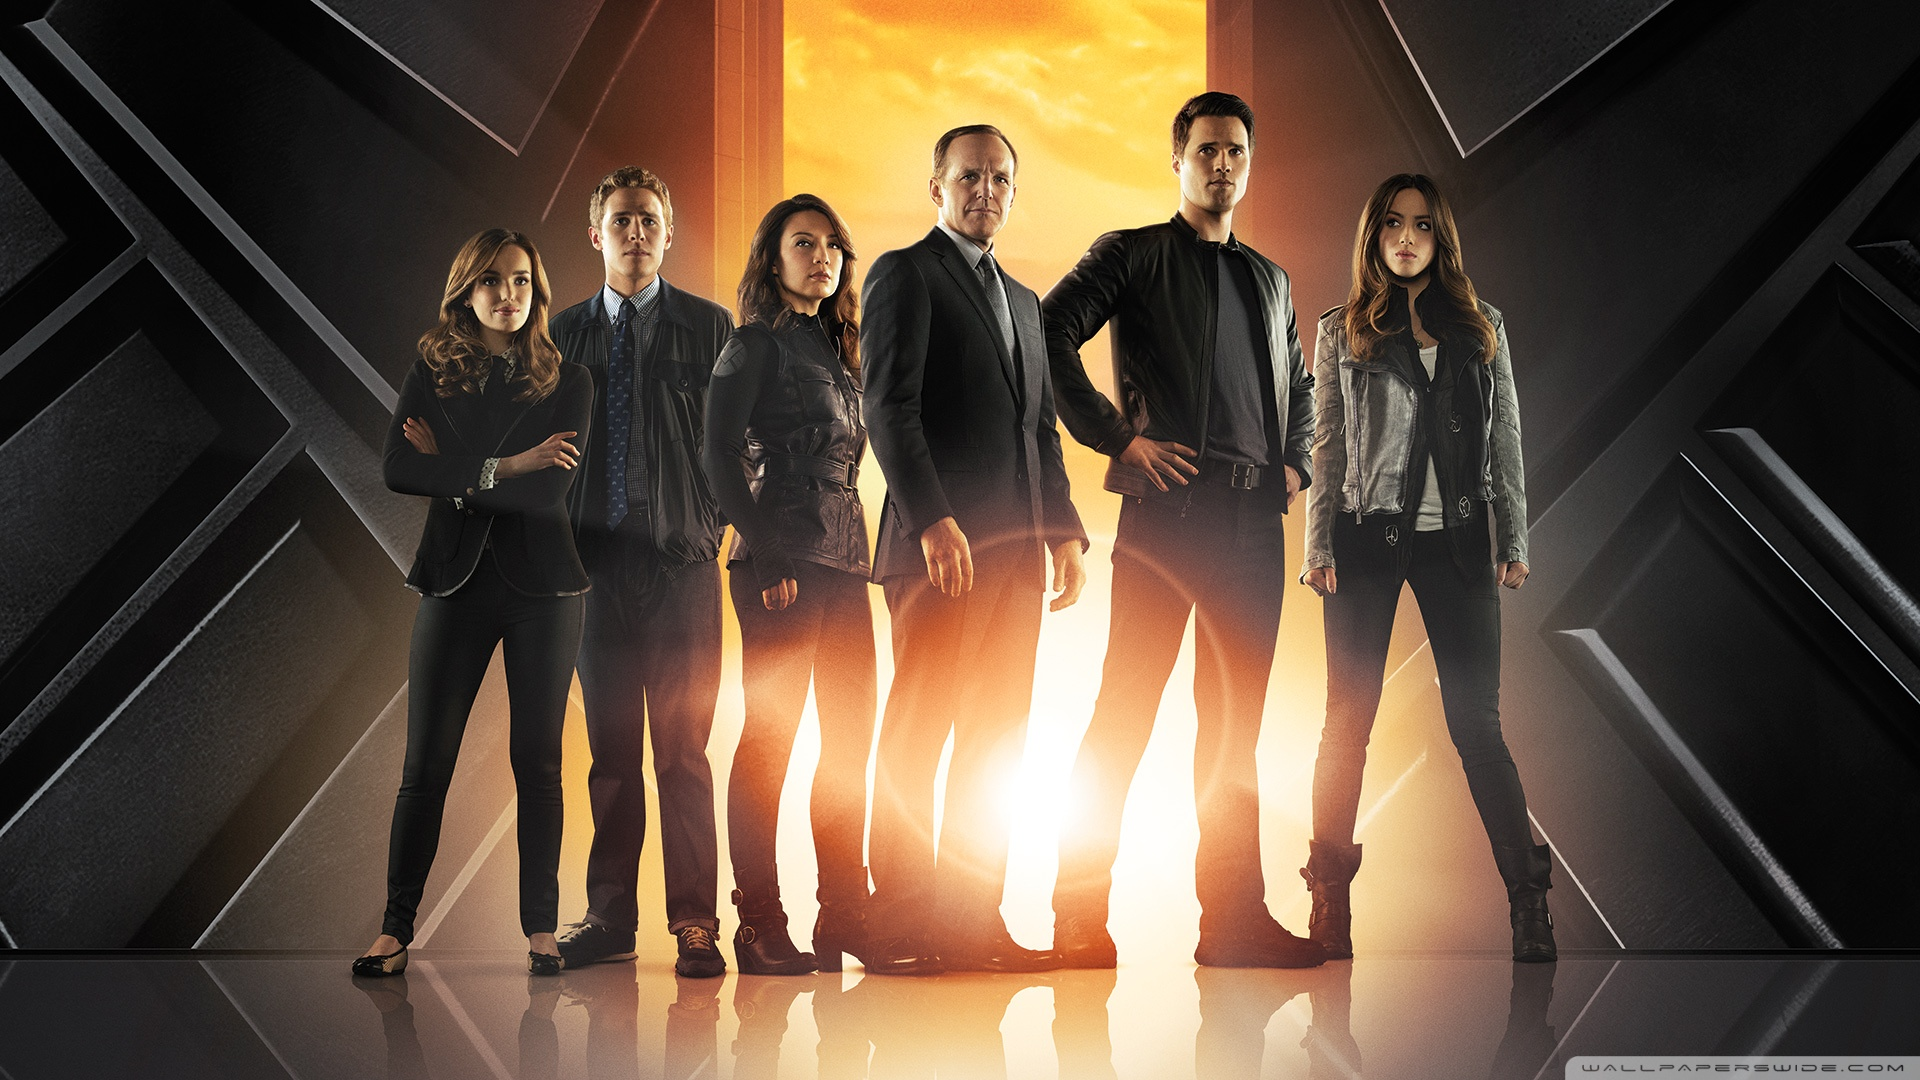 Related Wallpapers - Marvel's Agents Of Shield Season 1 , HD Wallpaper & Backgrounds